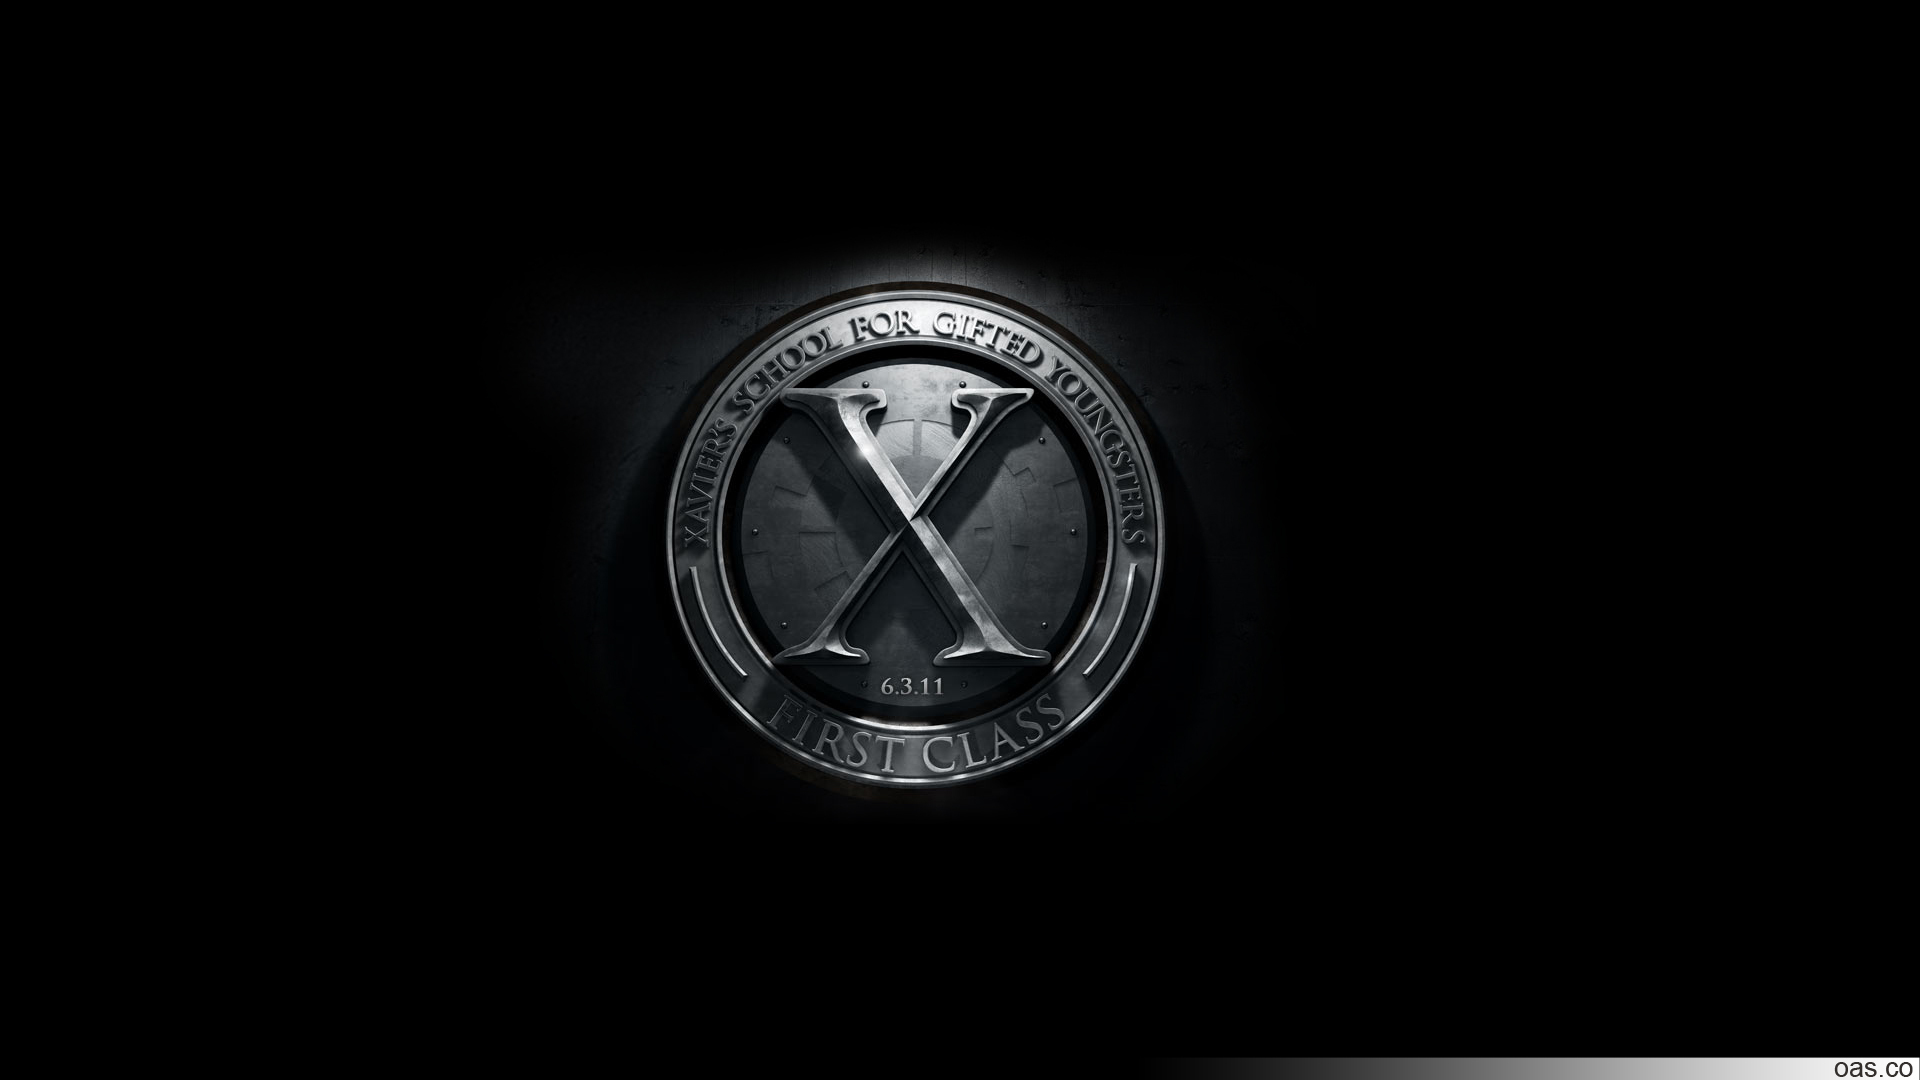 X Men images xmen HD wallpaper and background photos 1920x1080